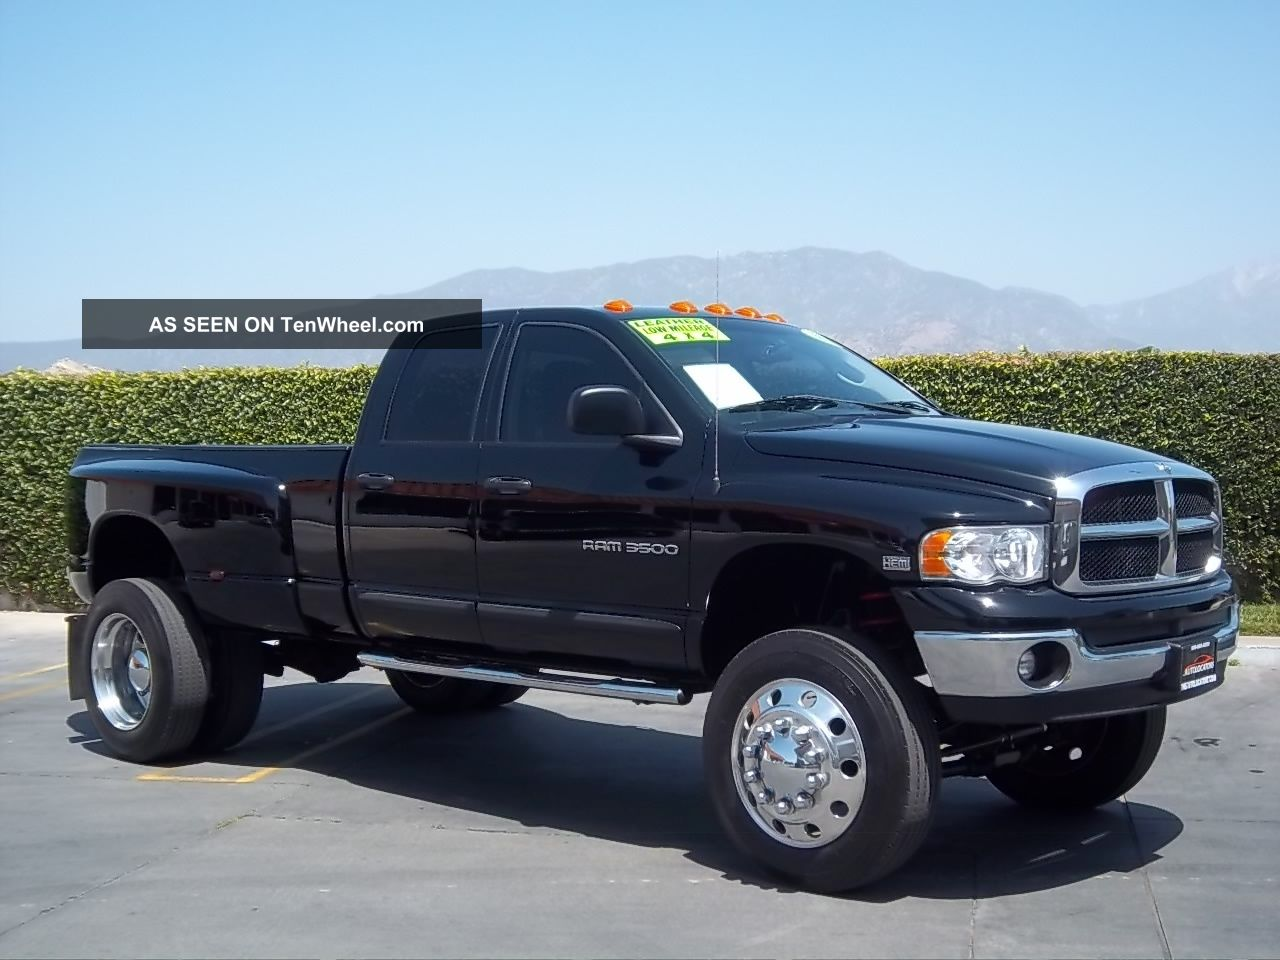 2004 Dodge Ram 3500 4x4 Dually With 22.  5 Semi Wheels And Tires,  Lifted,  Loaded Ram 3500 photo